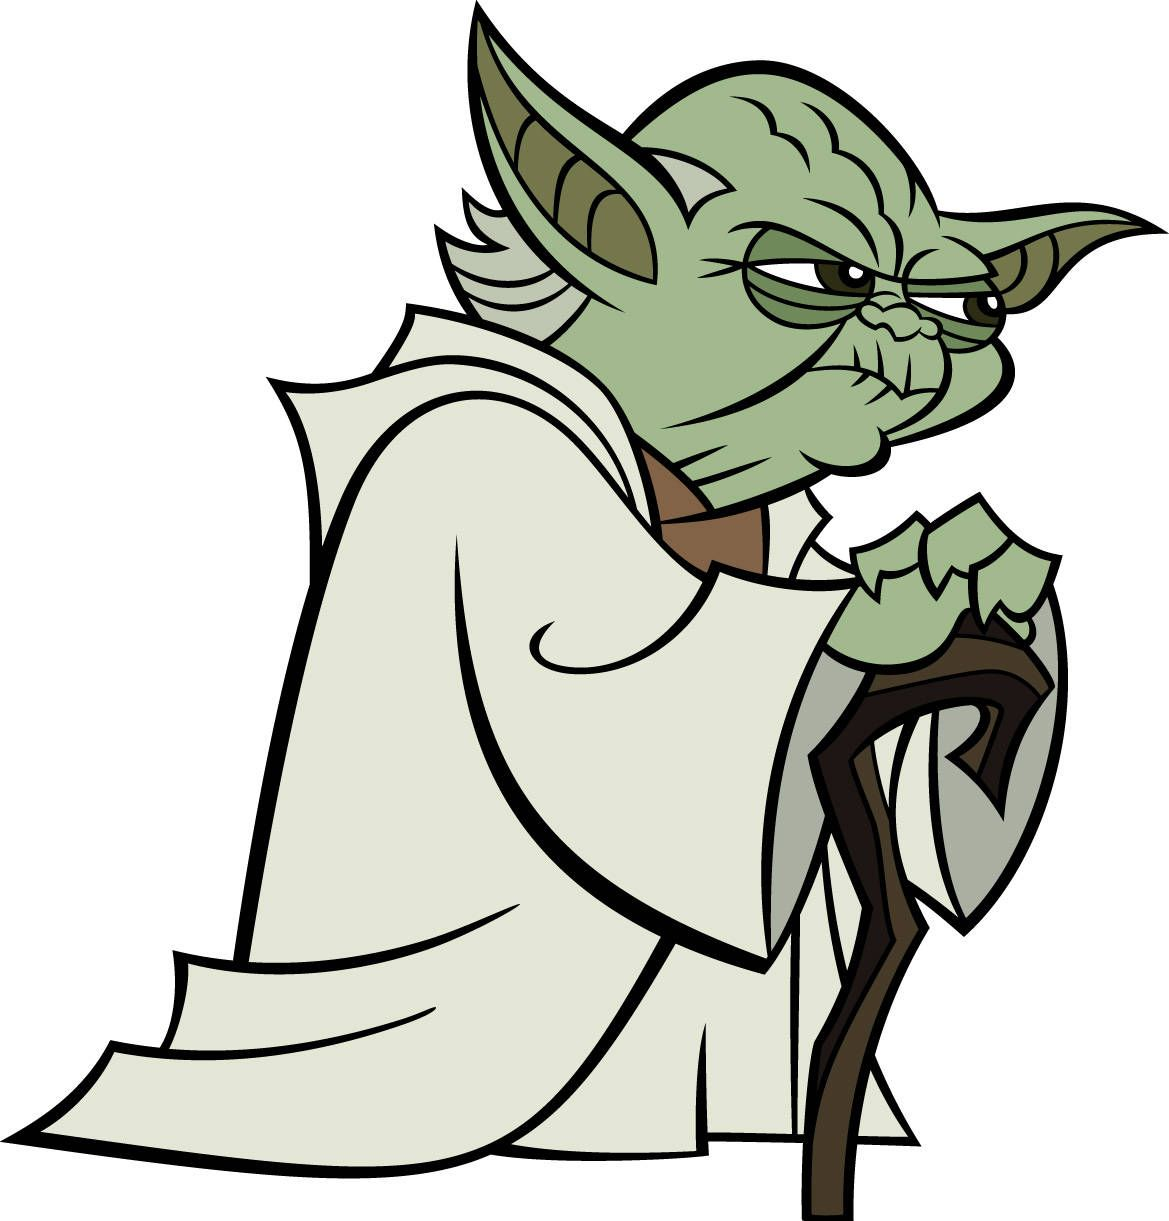 picture regarding Yoda Printable titled Star Wars: Clone Wars Illustrations or photos Star Wars Enjoyable Programs Star